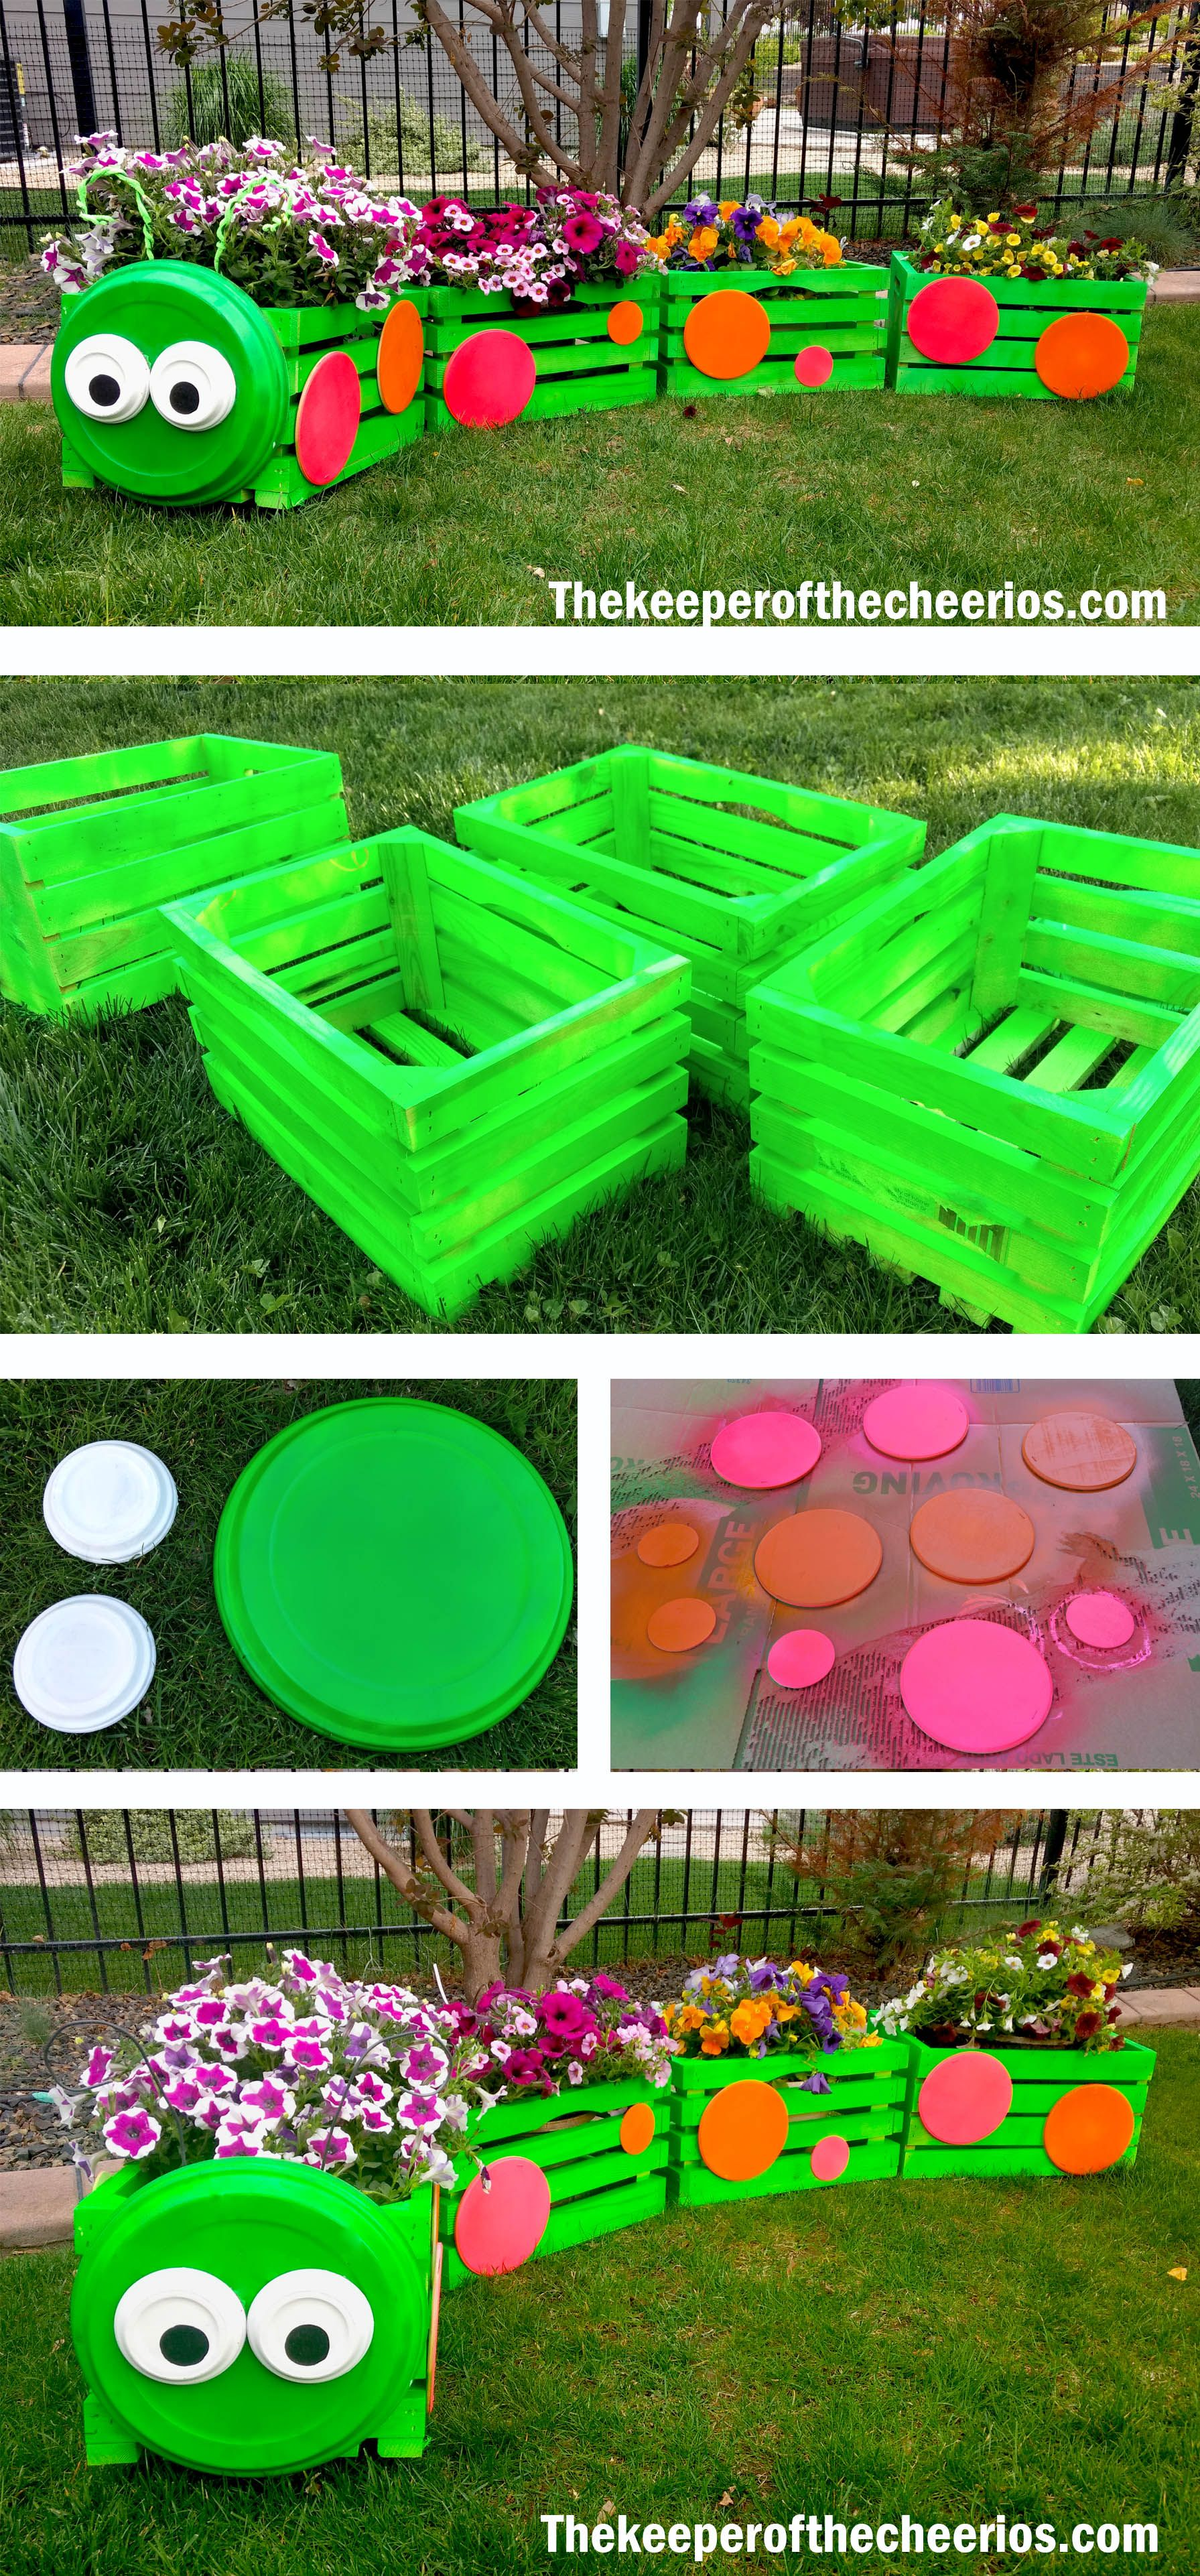 Caterpillar Crate Planter | дача | Pinterest | Crates, Planters and ...